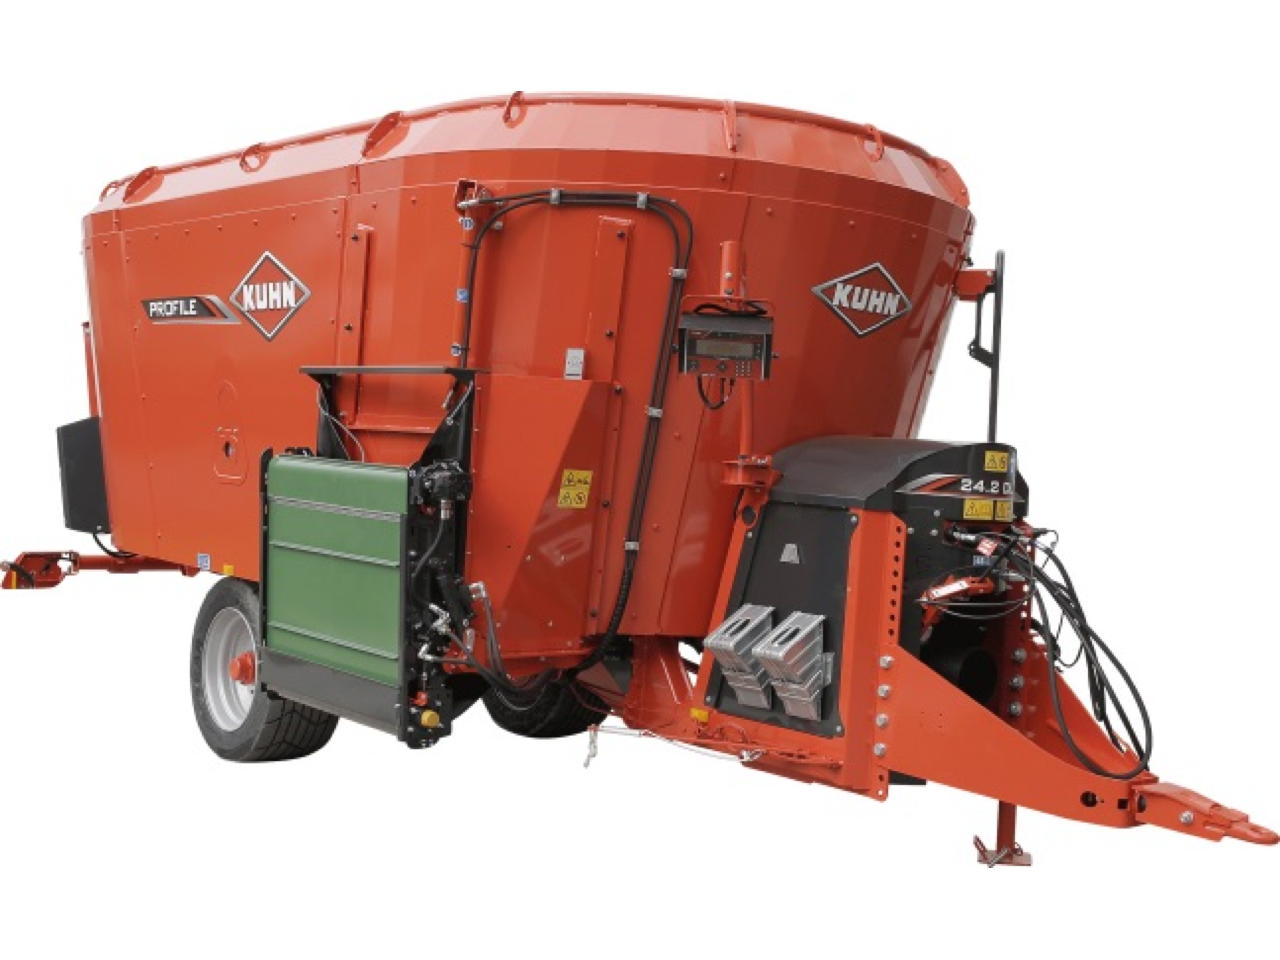 Kuhn Profile 2 DL Profile 20.2 DL